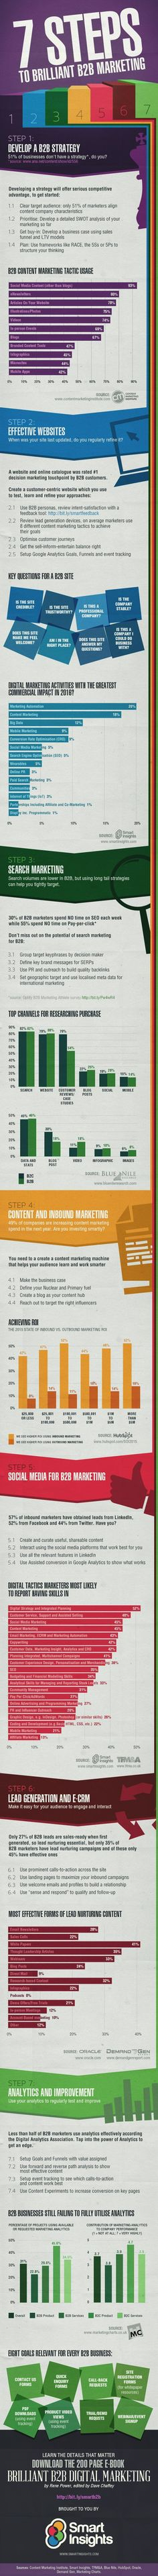 7 Steps to Brilliant B2B Digital Marketing 2015  Need a growth hacker for your startup, let us know. Visit - http://digiwale.com